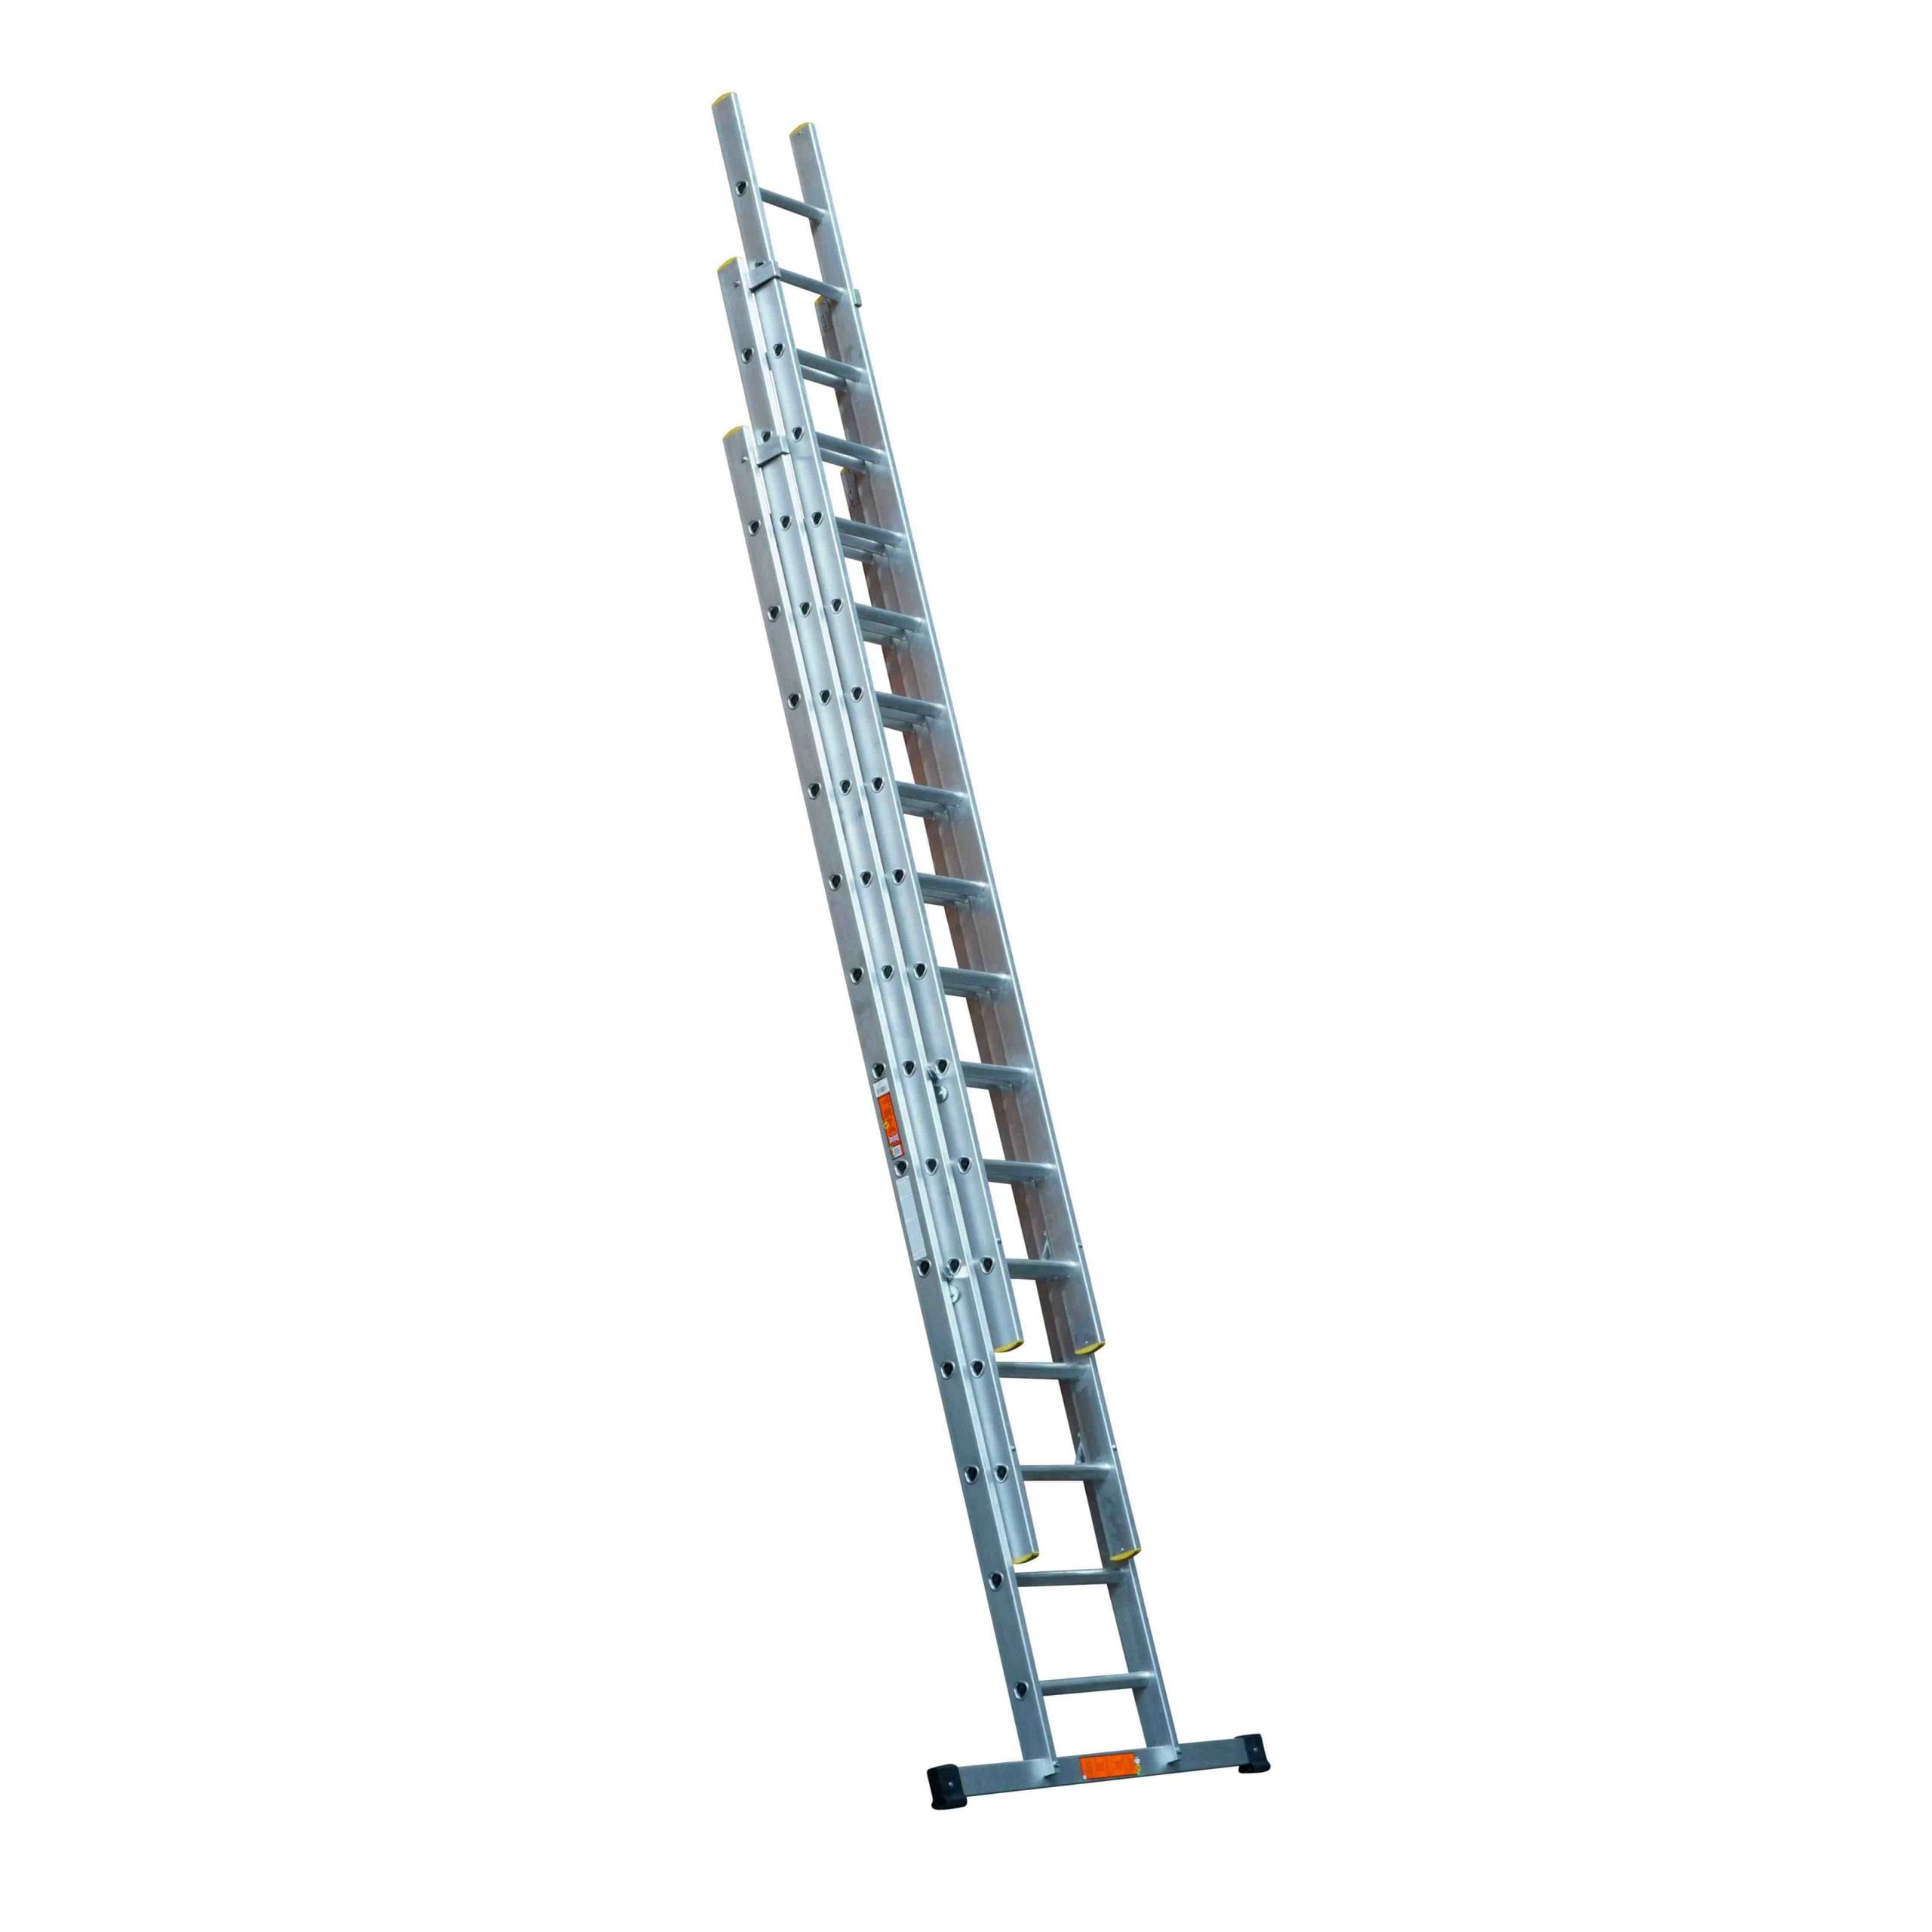 Professional Triple Section Extension Ladders